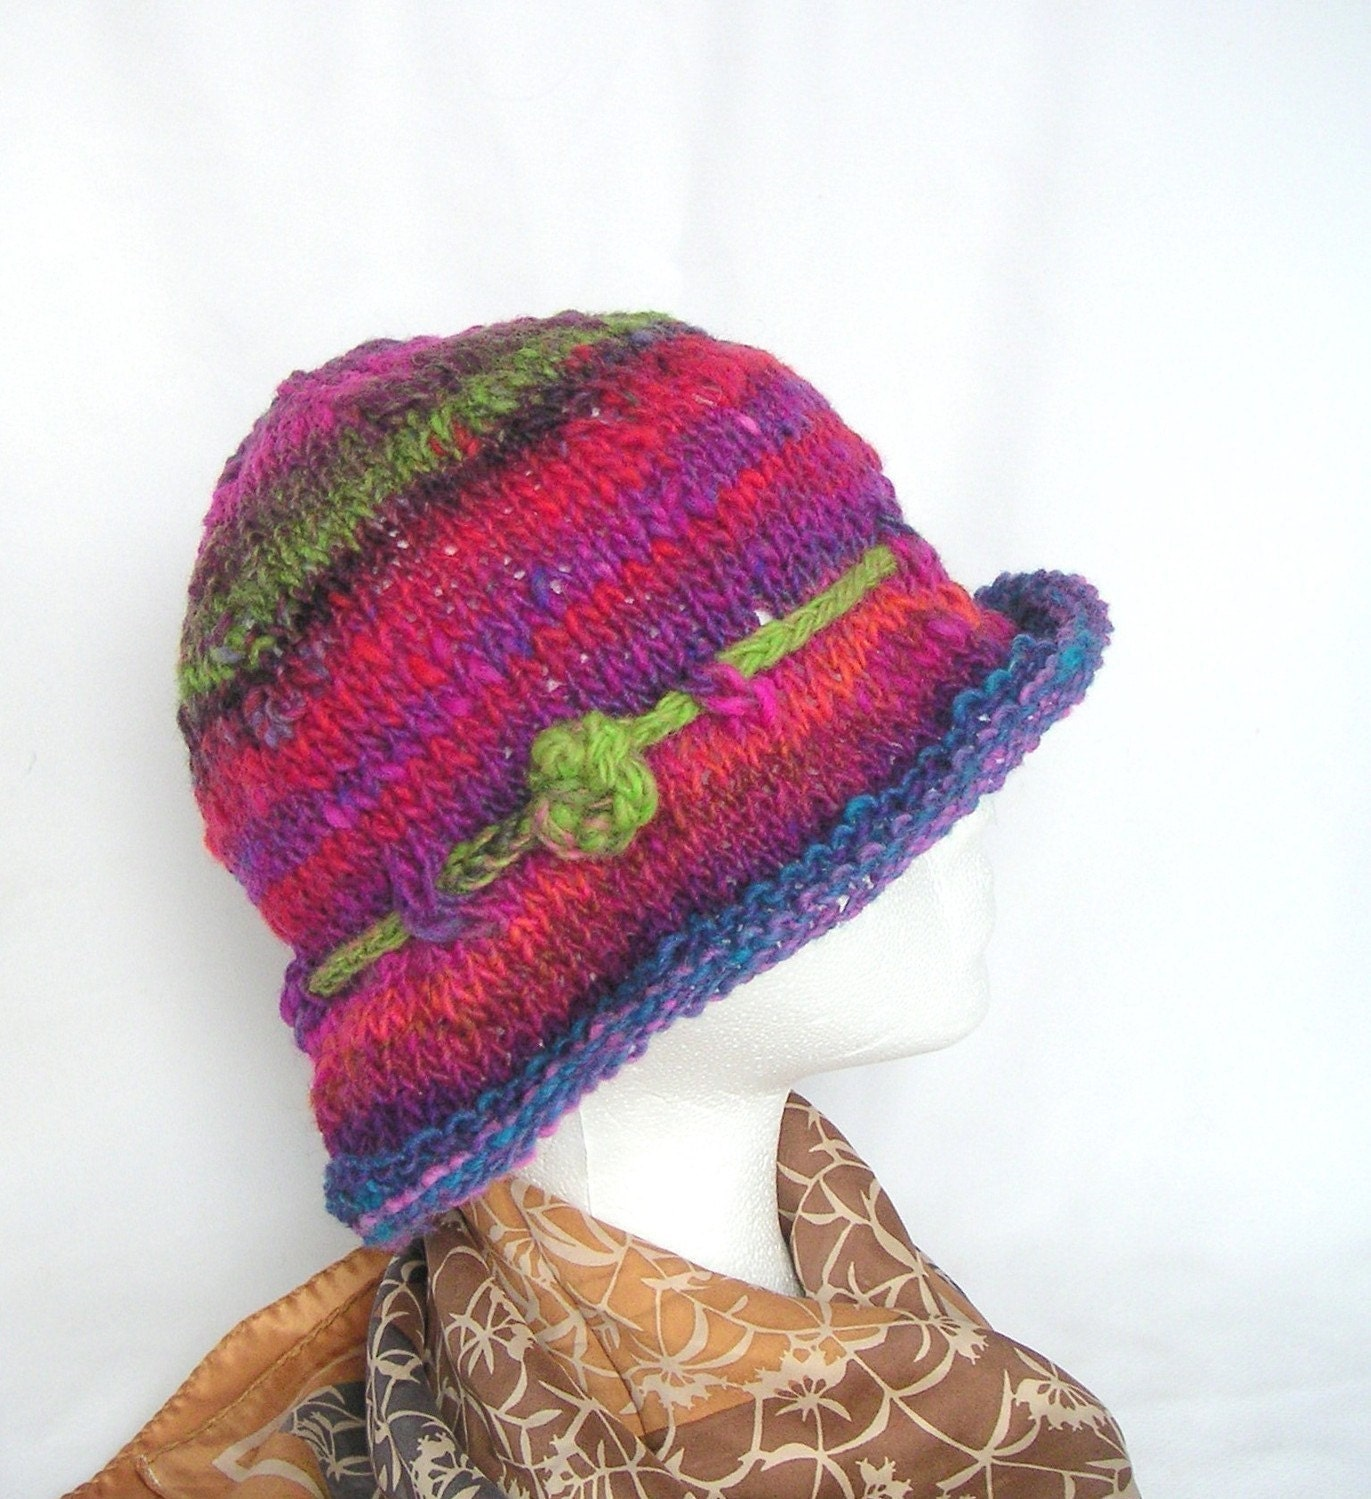 Easy Knit Hat Pattern Circular Needles : Simple Knit Hat Knitting Pattern Easy Knit by ...